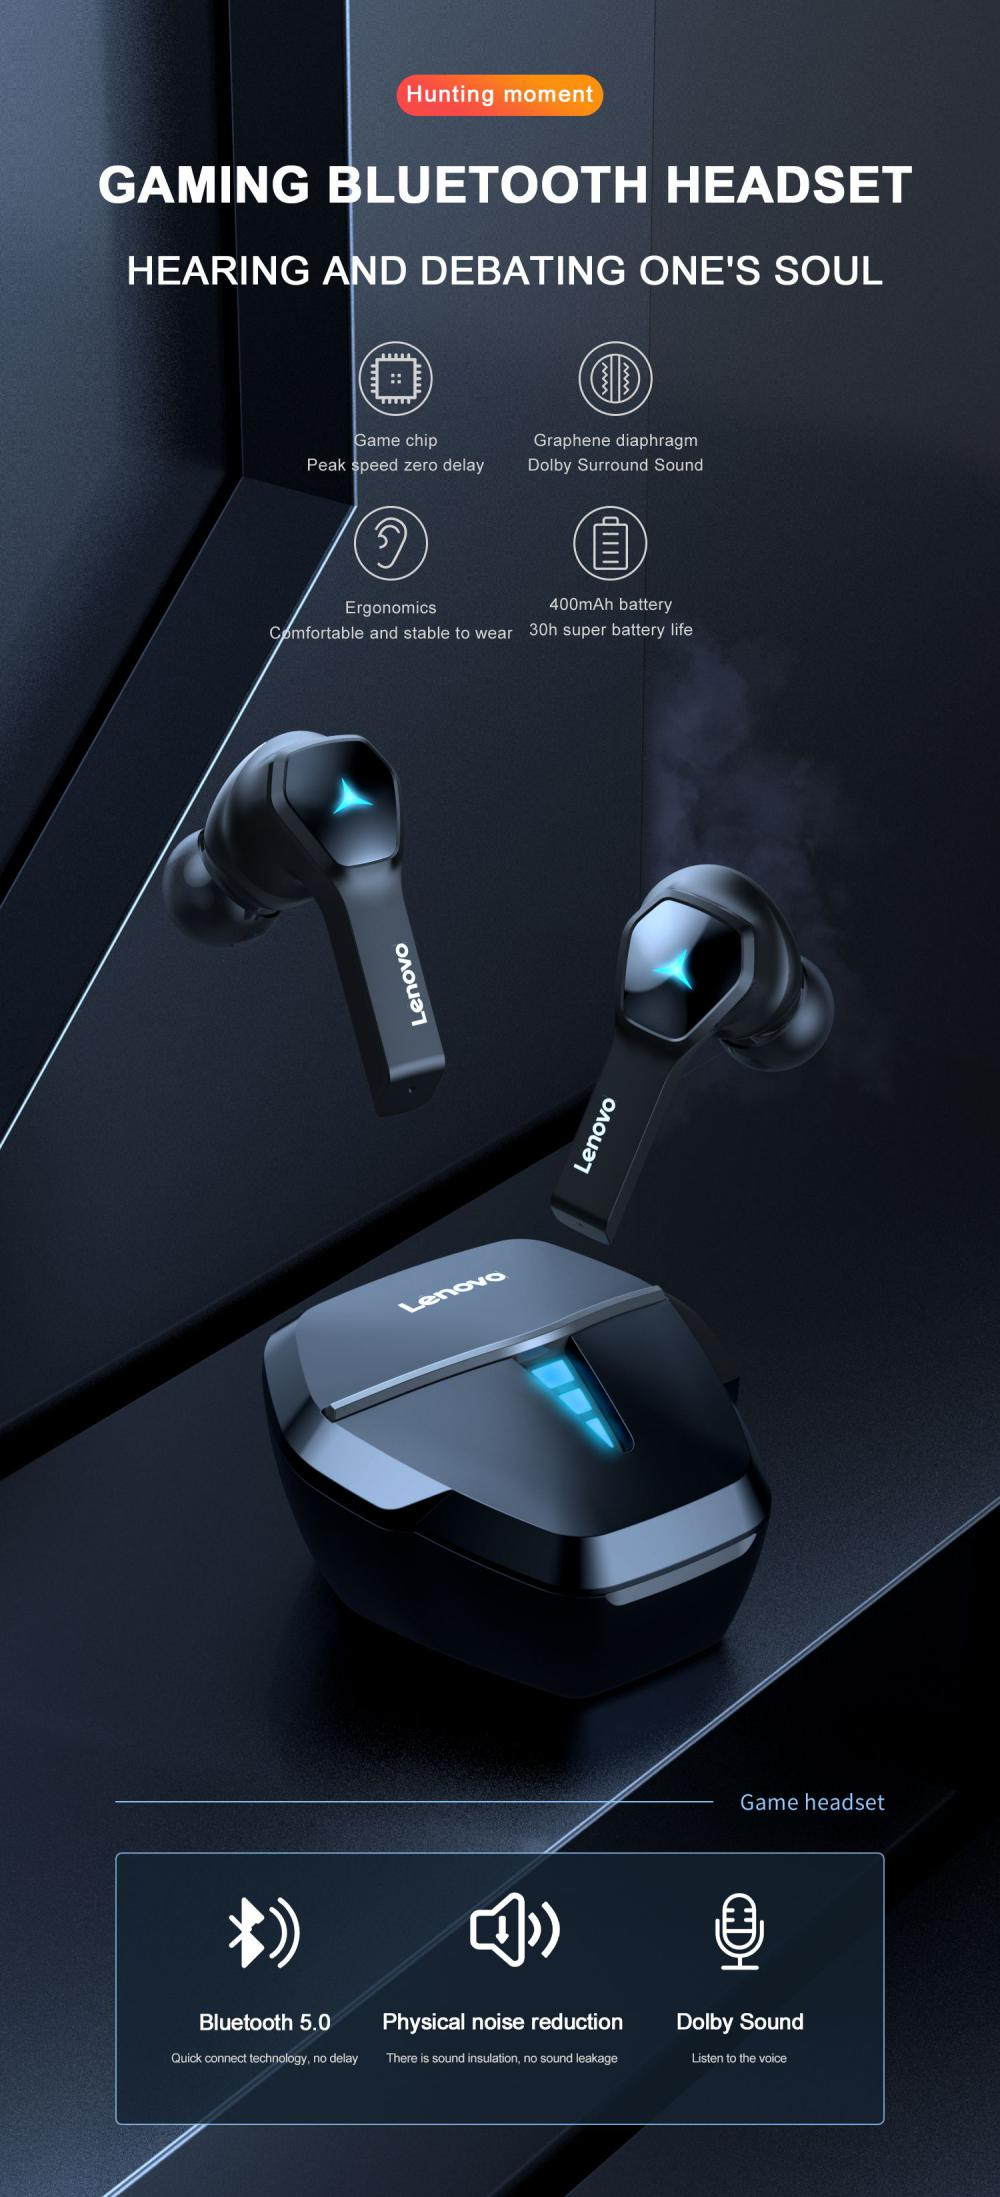 Lenovo Hq08 Gaming Wireless Bluetooth Earbuds (3)